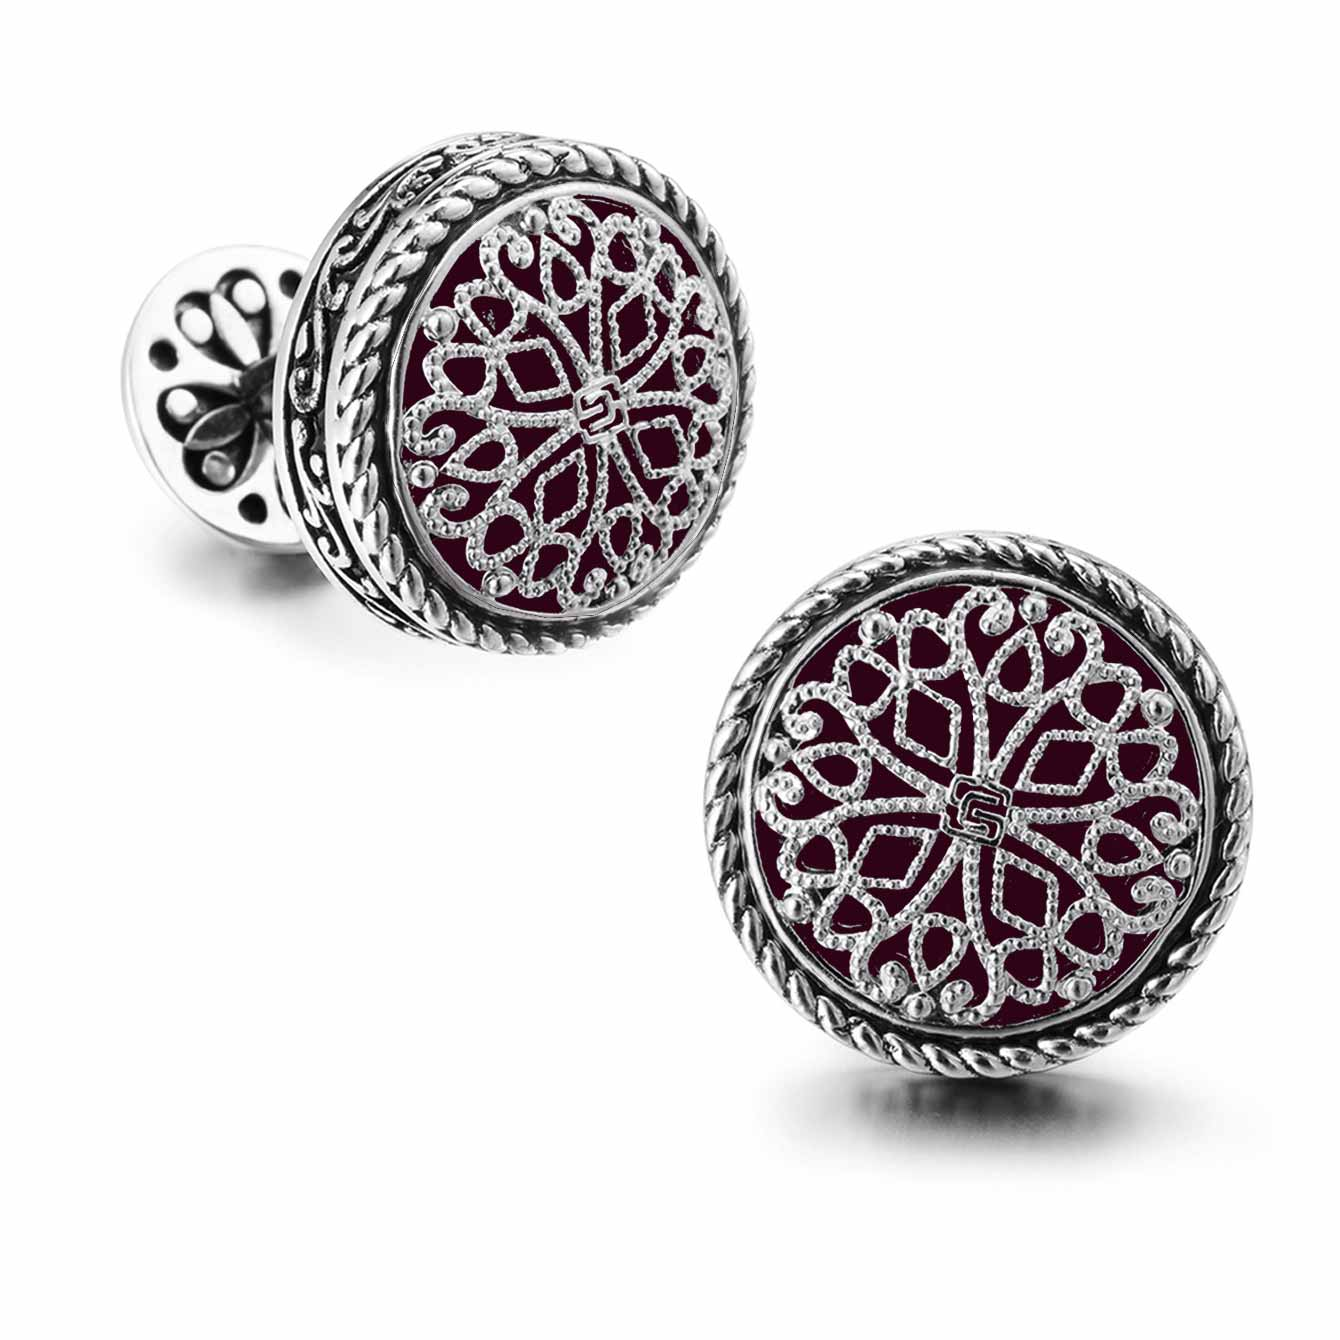 Silver Platinum Plated Cufflinks